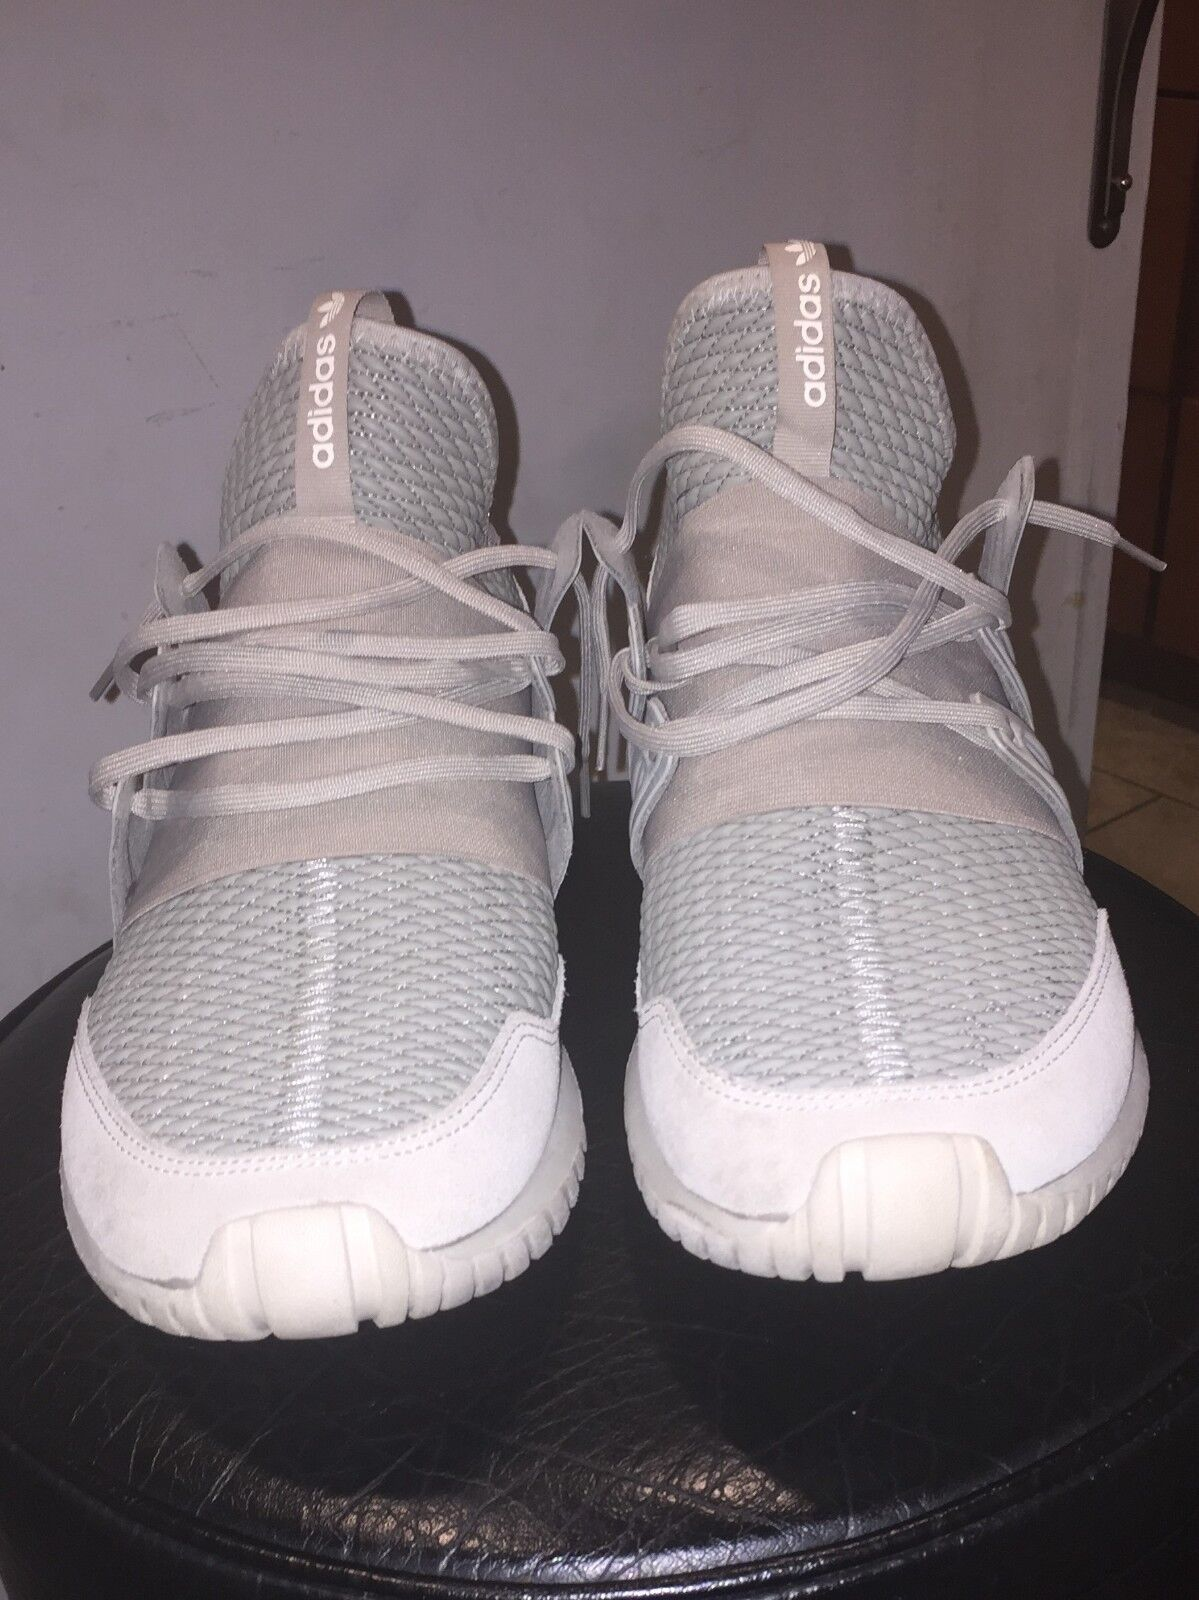 Adidas shoes - Size 12 - Tan colord - Box Included - BARELY WORN